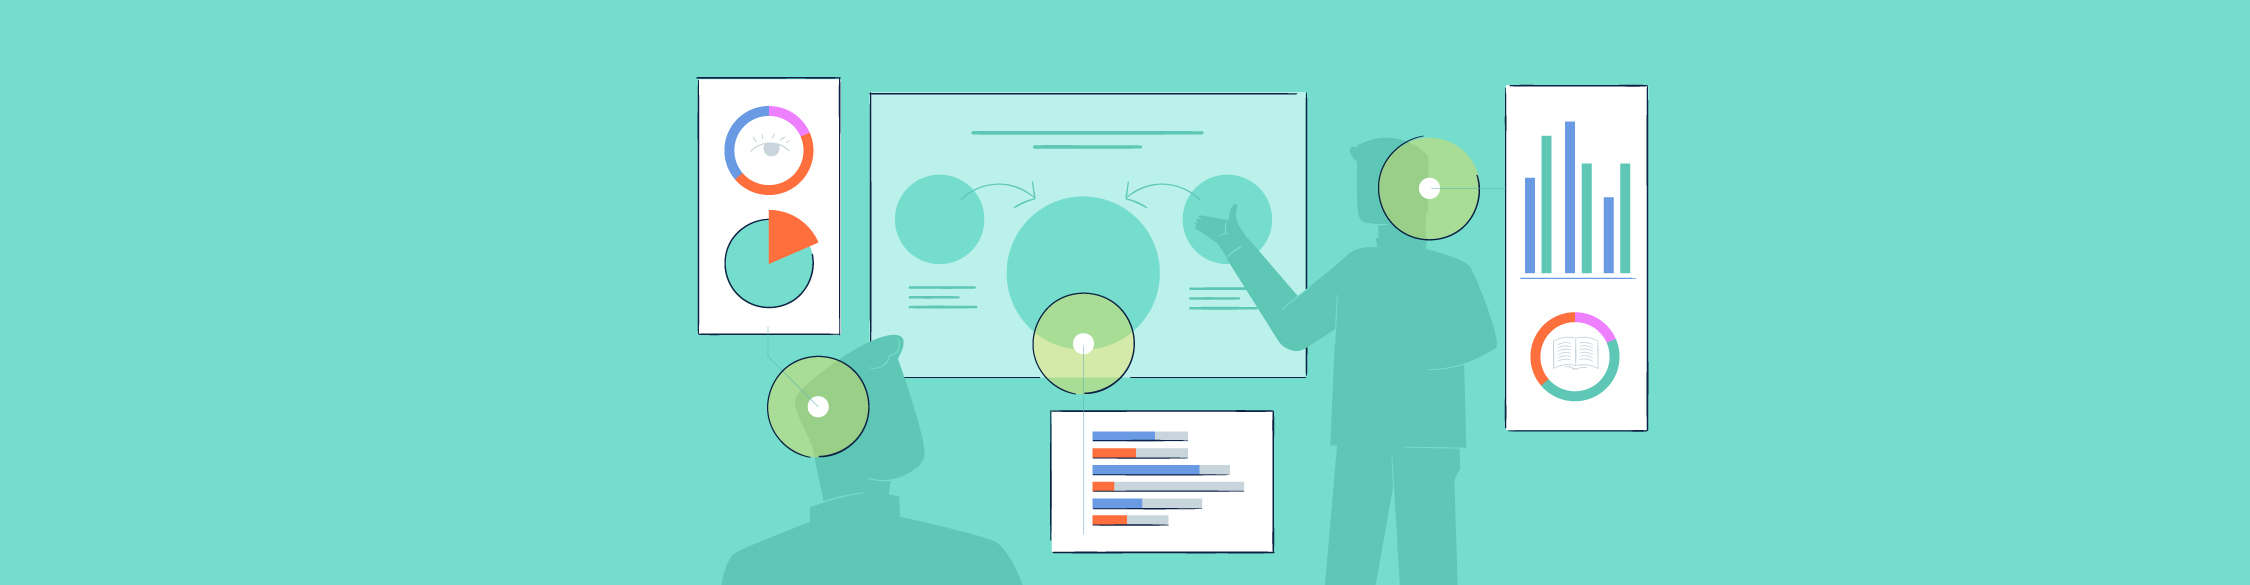 24 Presentation Statistics You Should Know in 2021